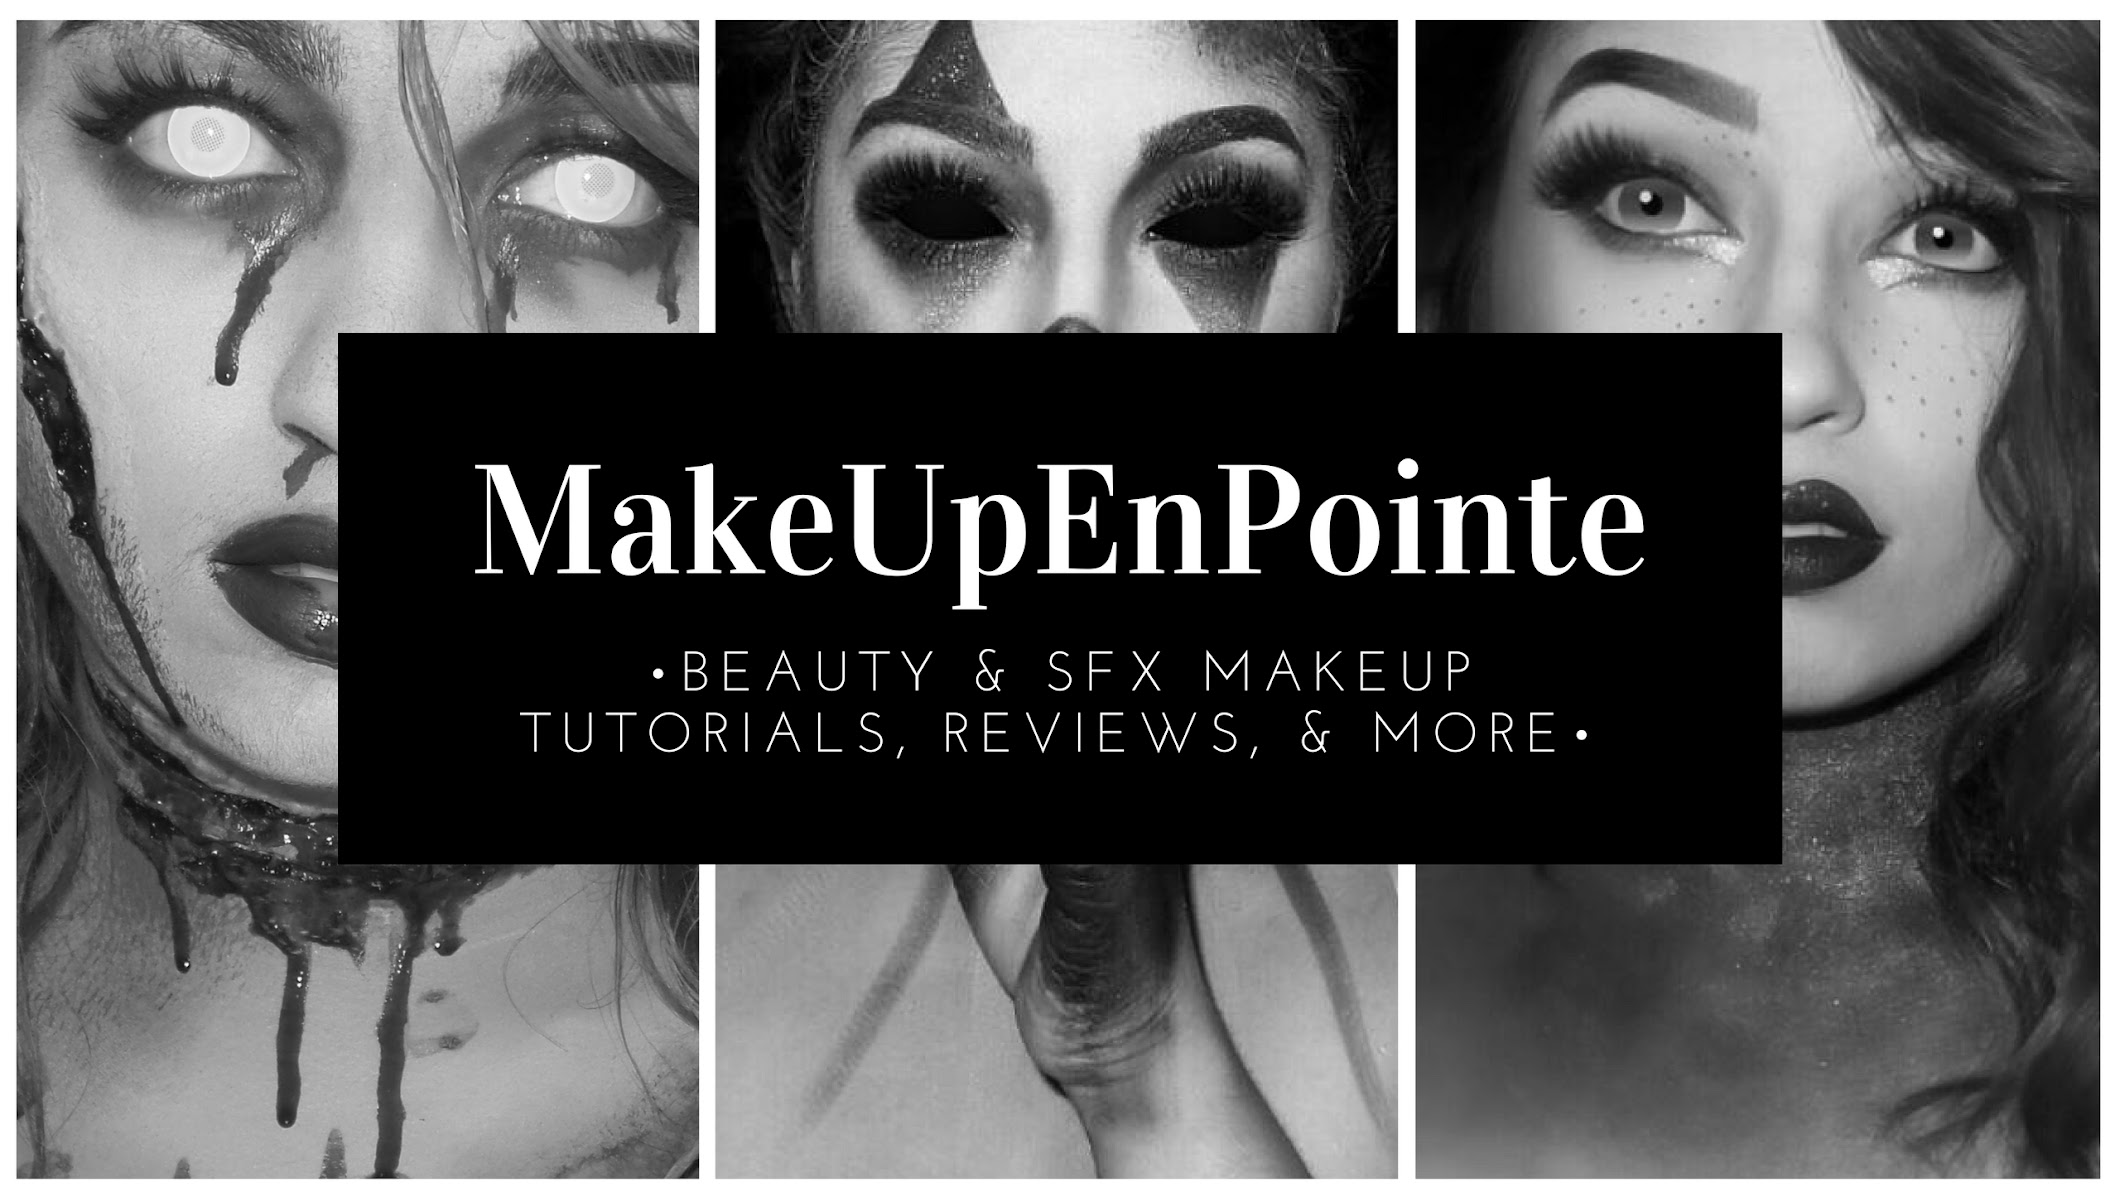 MakeUpEnPointe